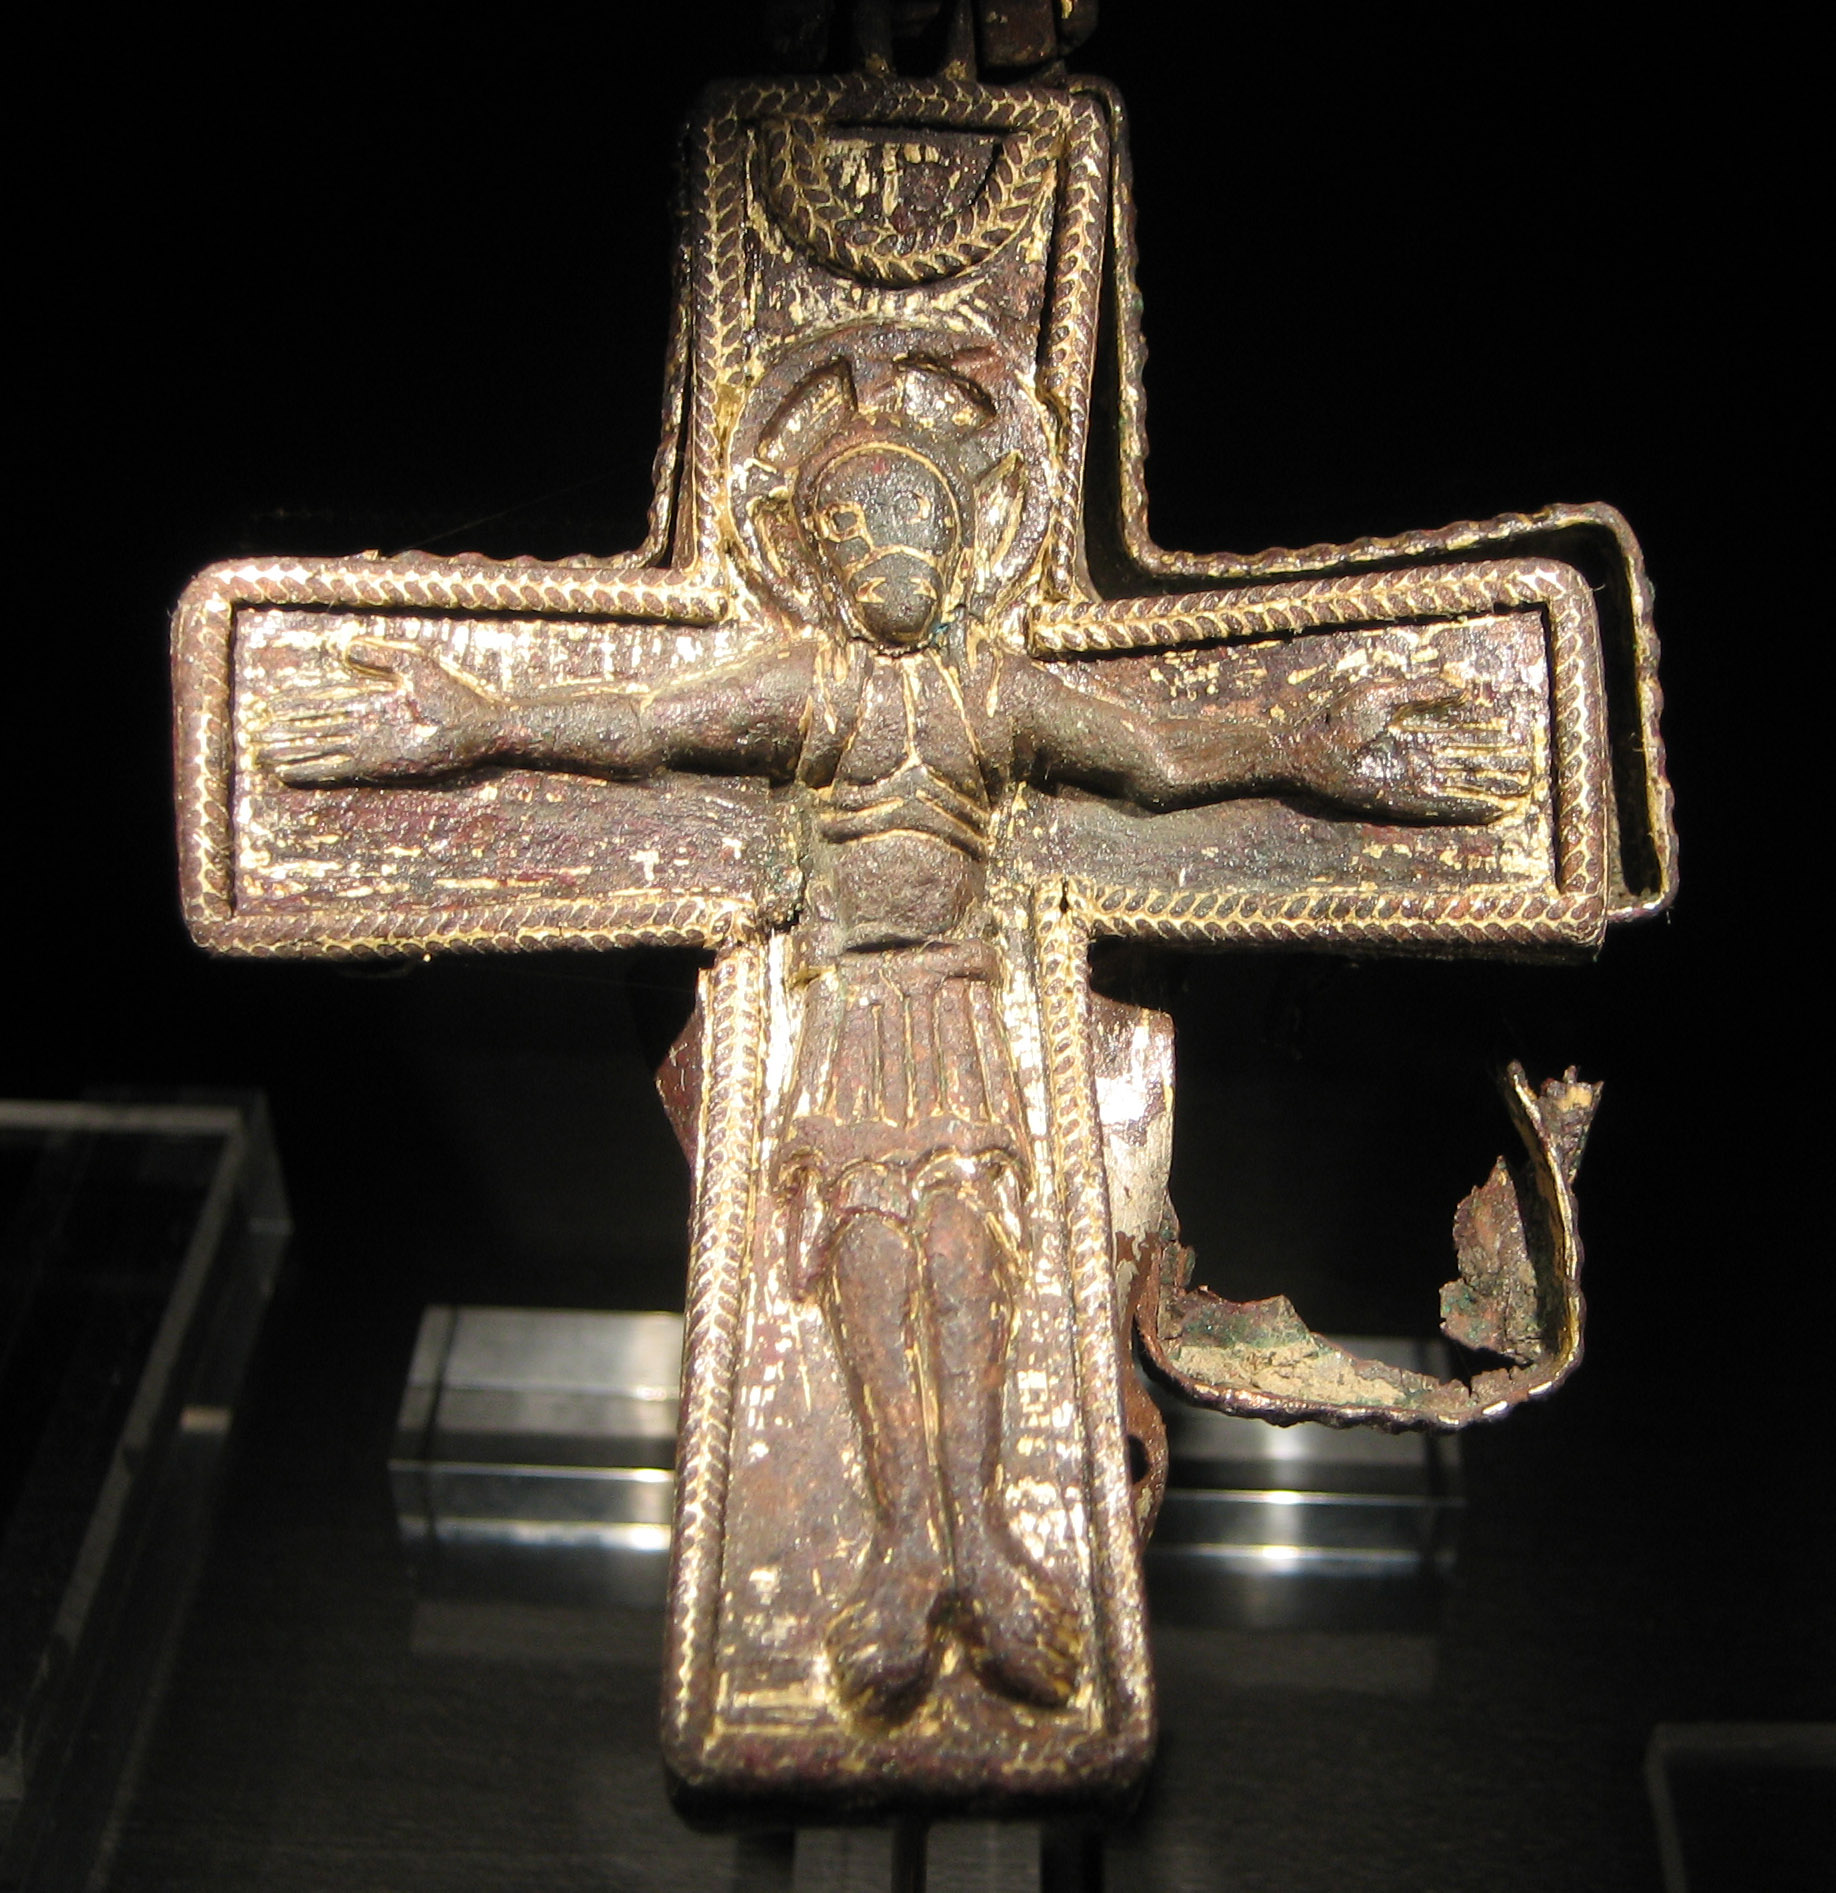 christianity in viking age scandinavia essay In viking age scandinavia marianne hem eriksen  abstract mortuary  2007,  23), and uses many concepts from pre-christian mentality, such as sorcery.